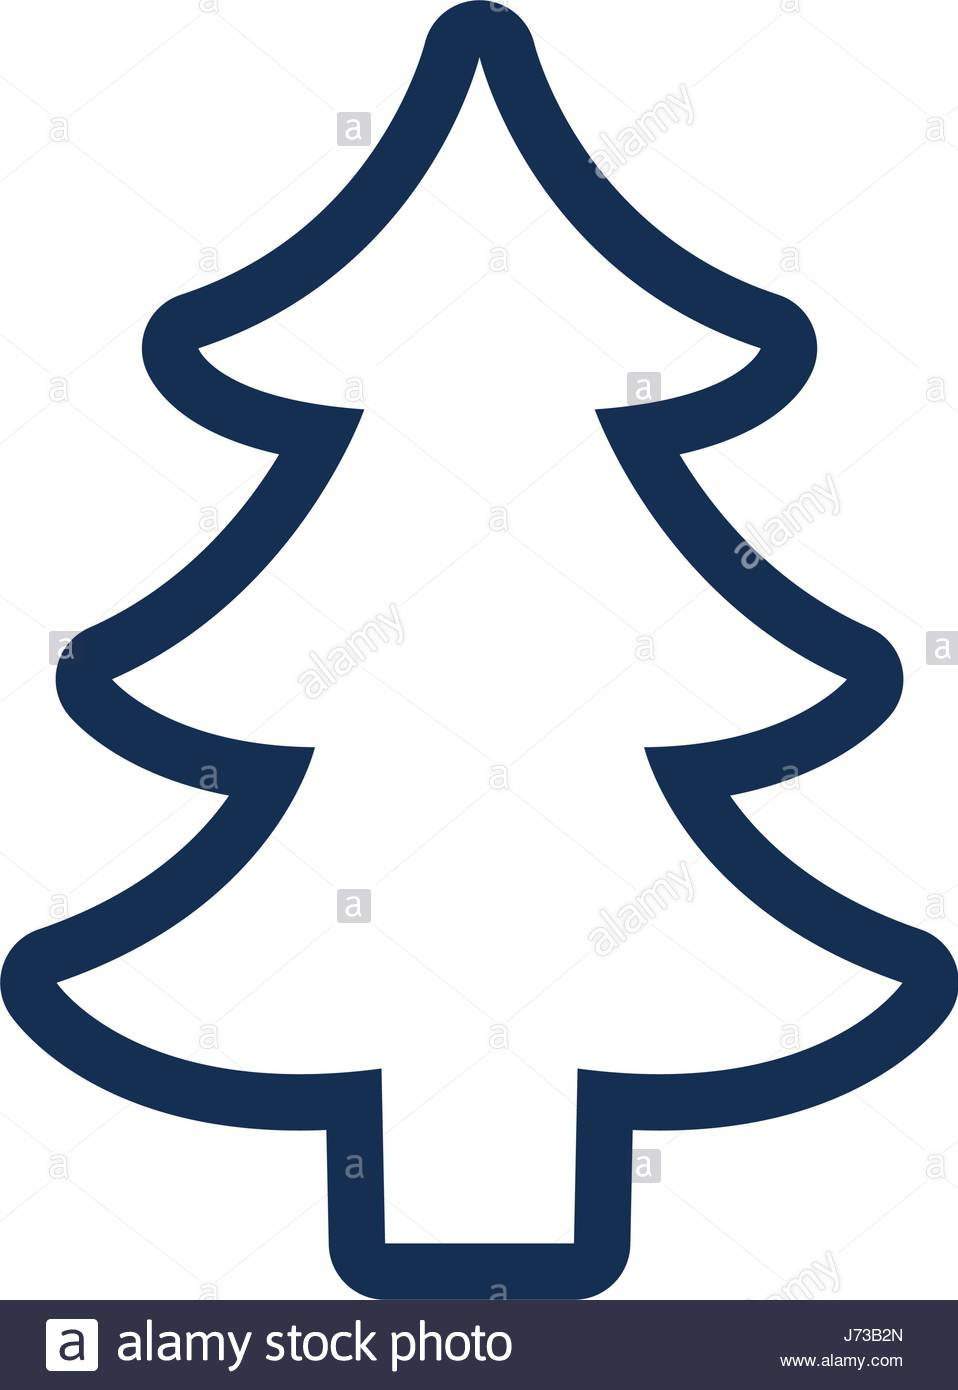 958x1390 Silhouette Tree Pine Christmas Decoration Stock Vector Art